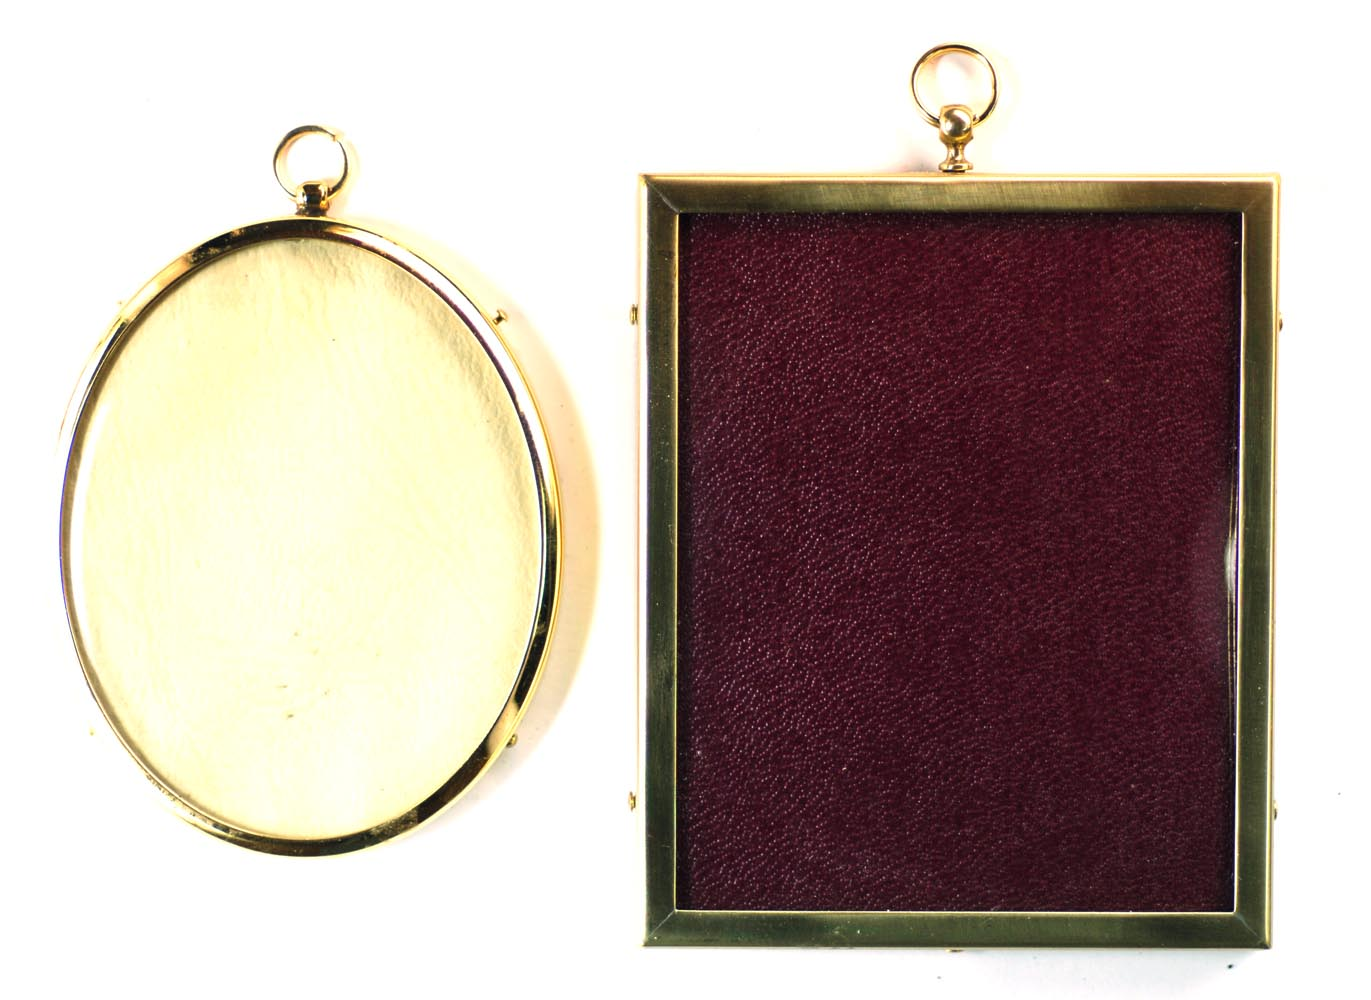 for later miniatures however there are two firms that do an admirable job of supplying brass gold plated and wooden frames and a few accessories - Miniature Frames